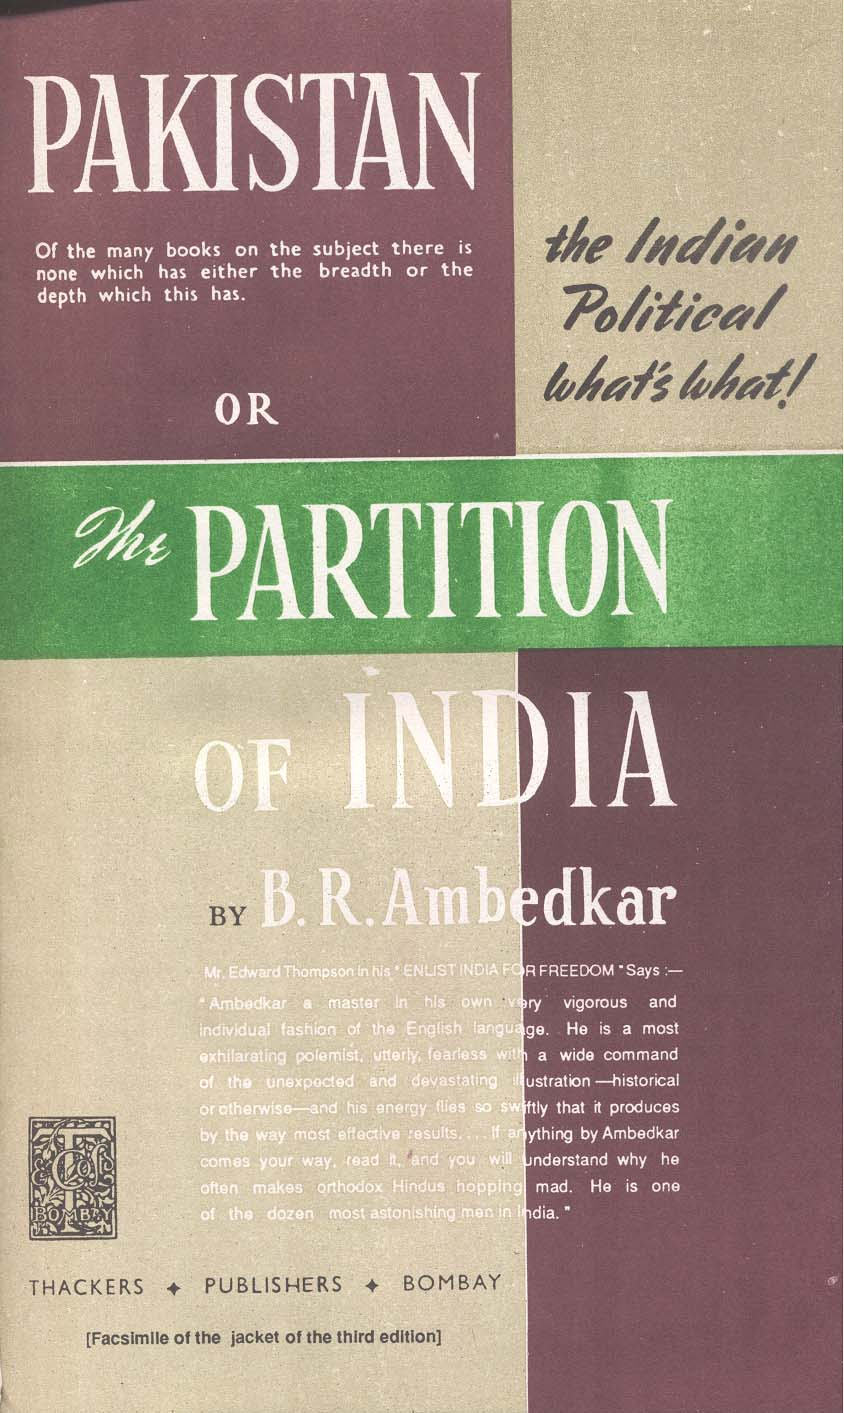 Pakistan, or, The Partition of India, by Dr. B. R. Ambedkar